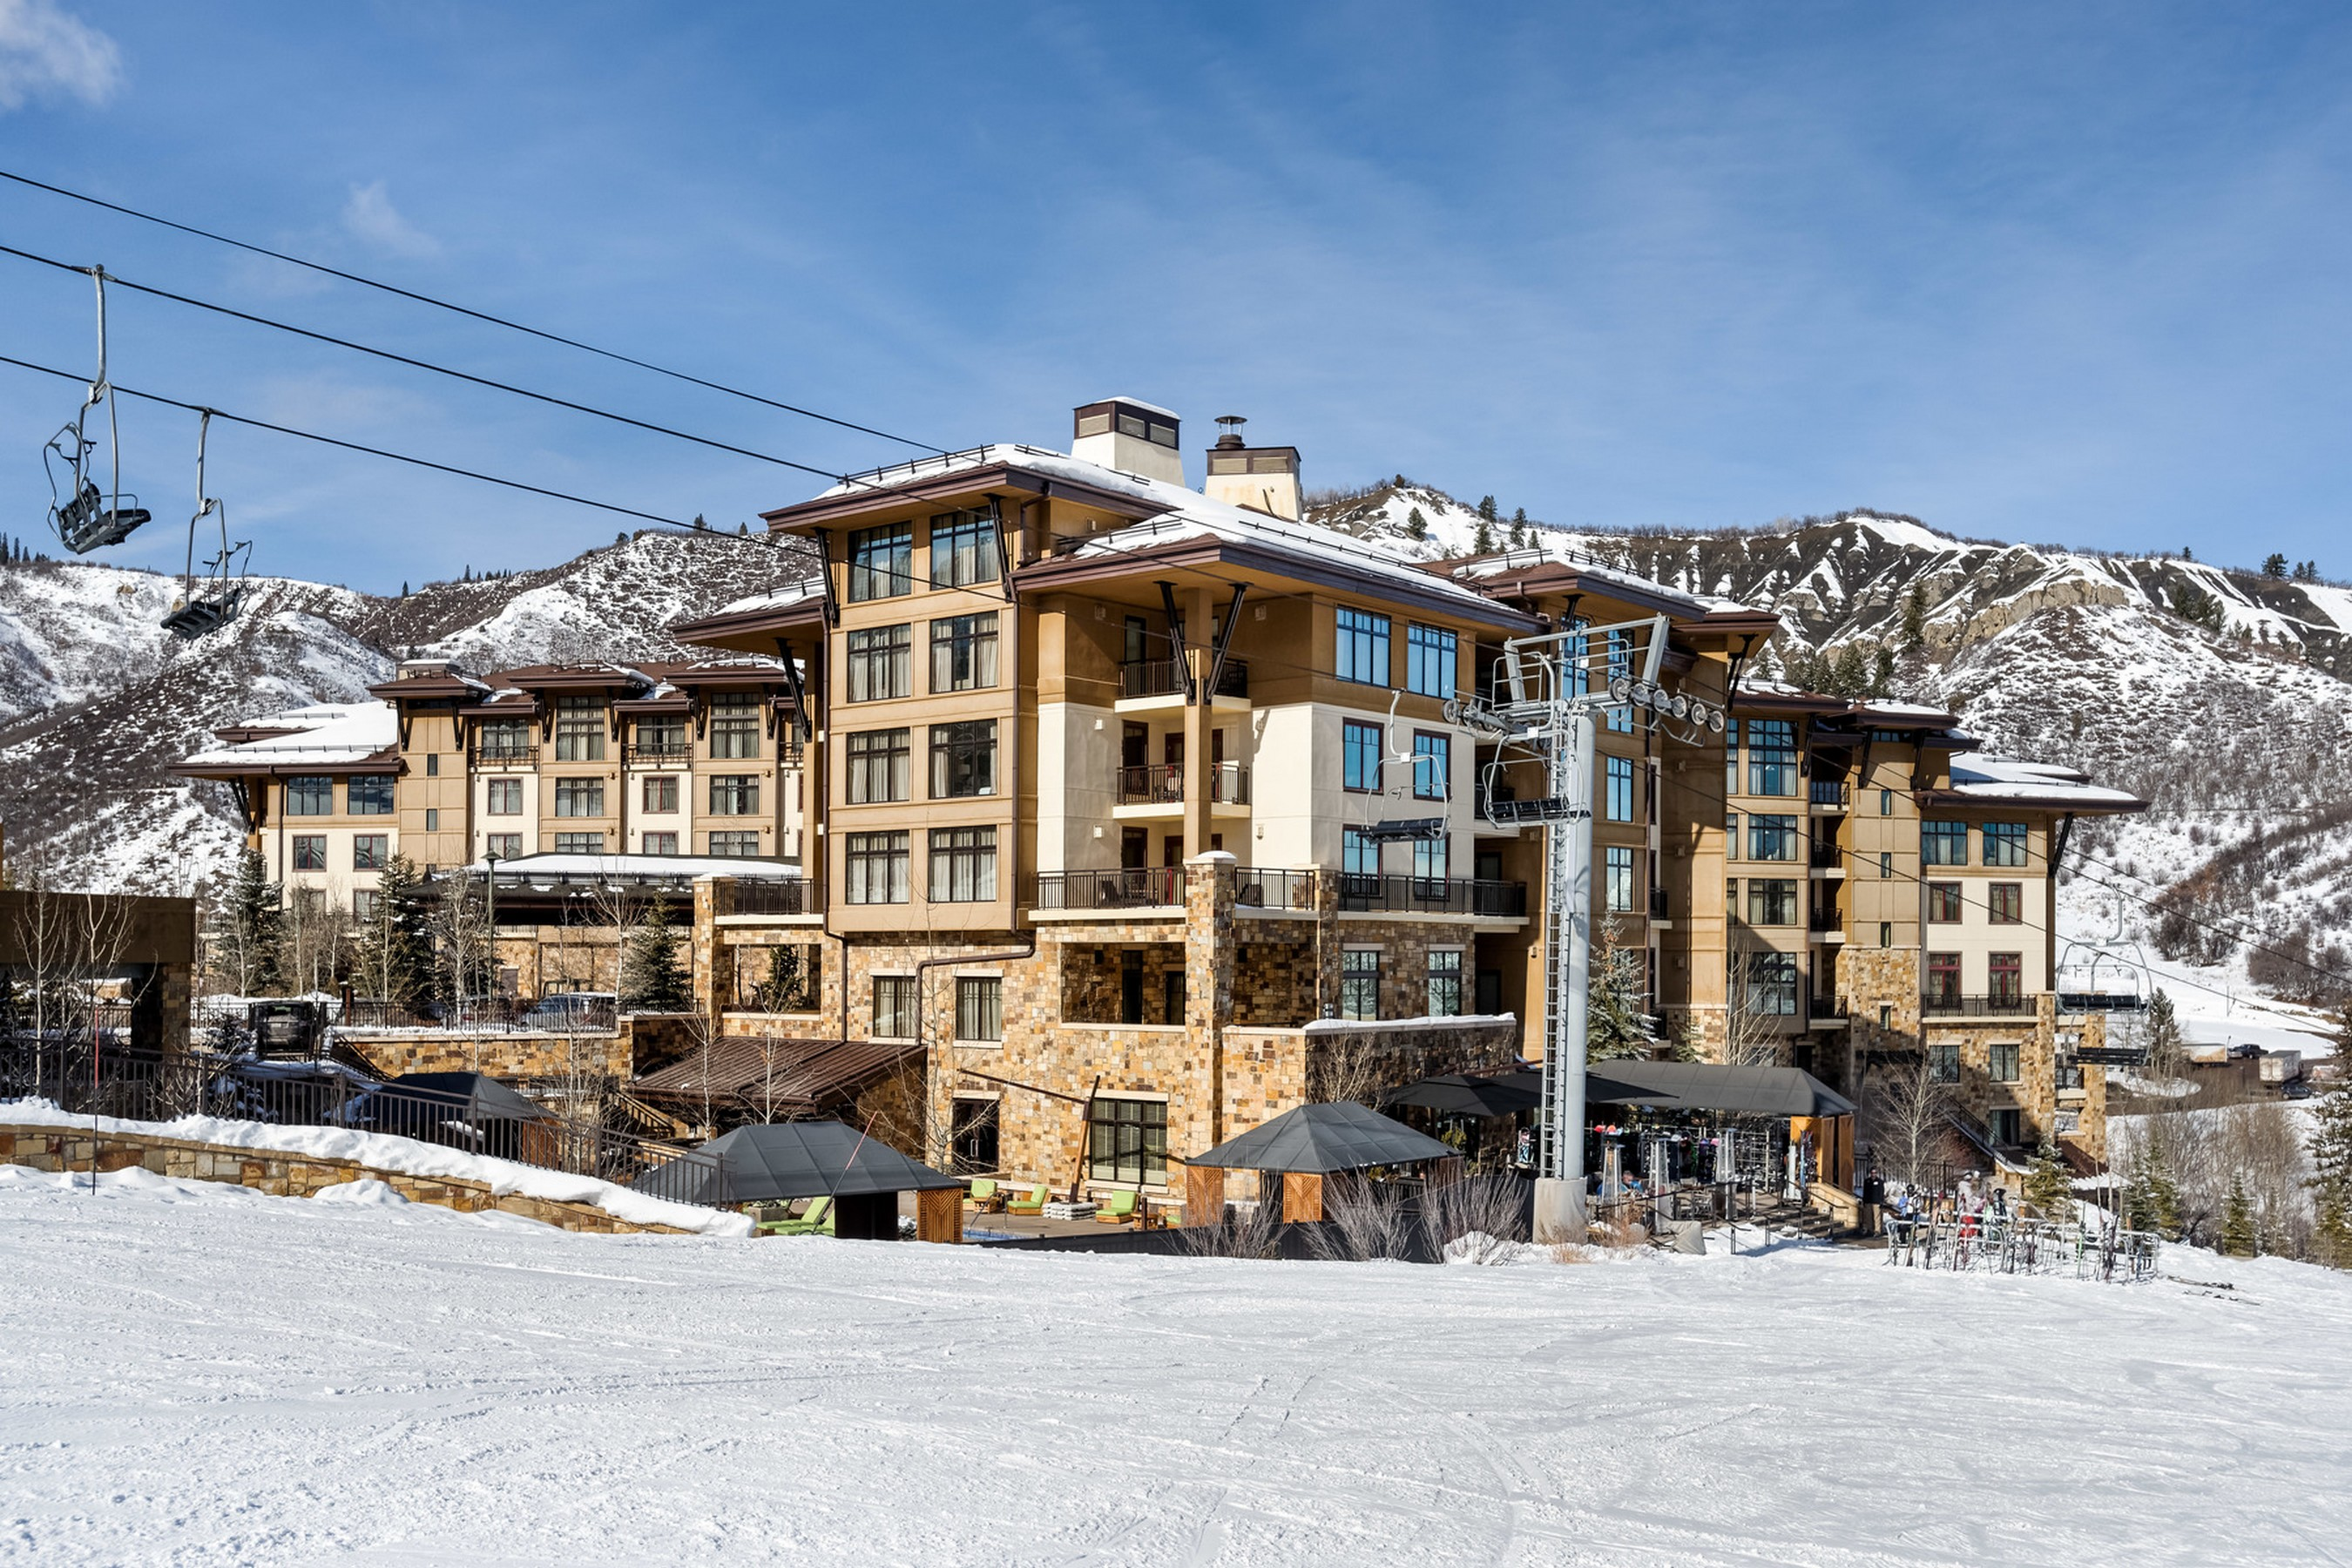 130 Wood Road, unit 214 Snowmass Village Photo 28